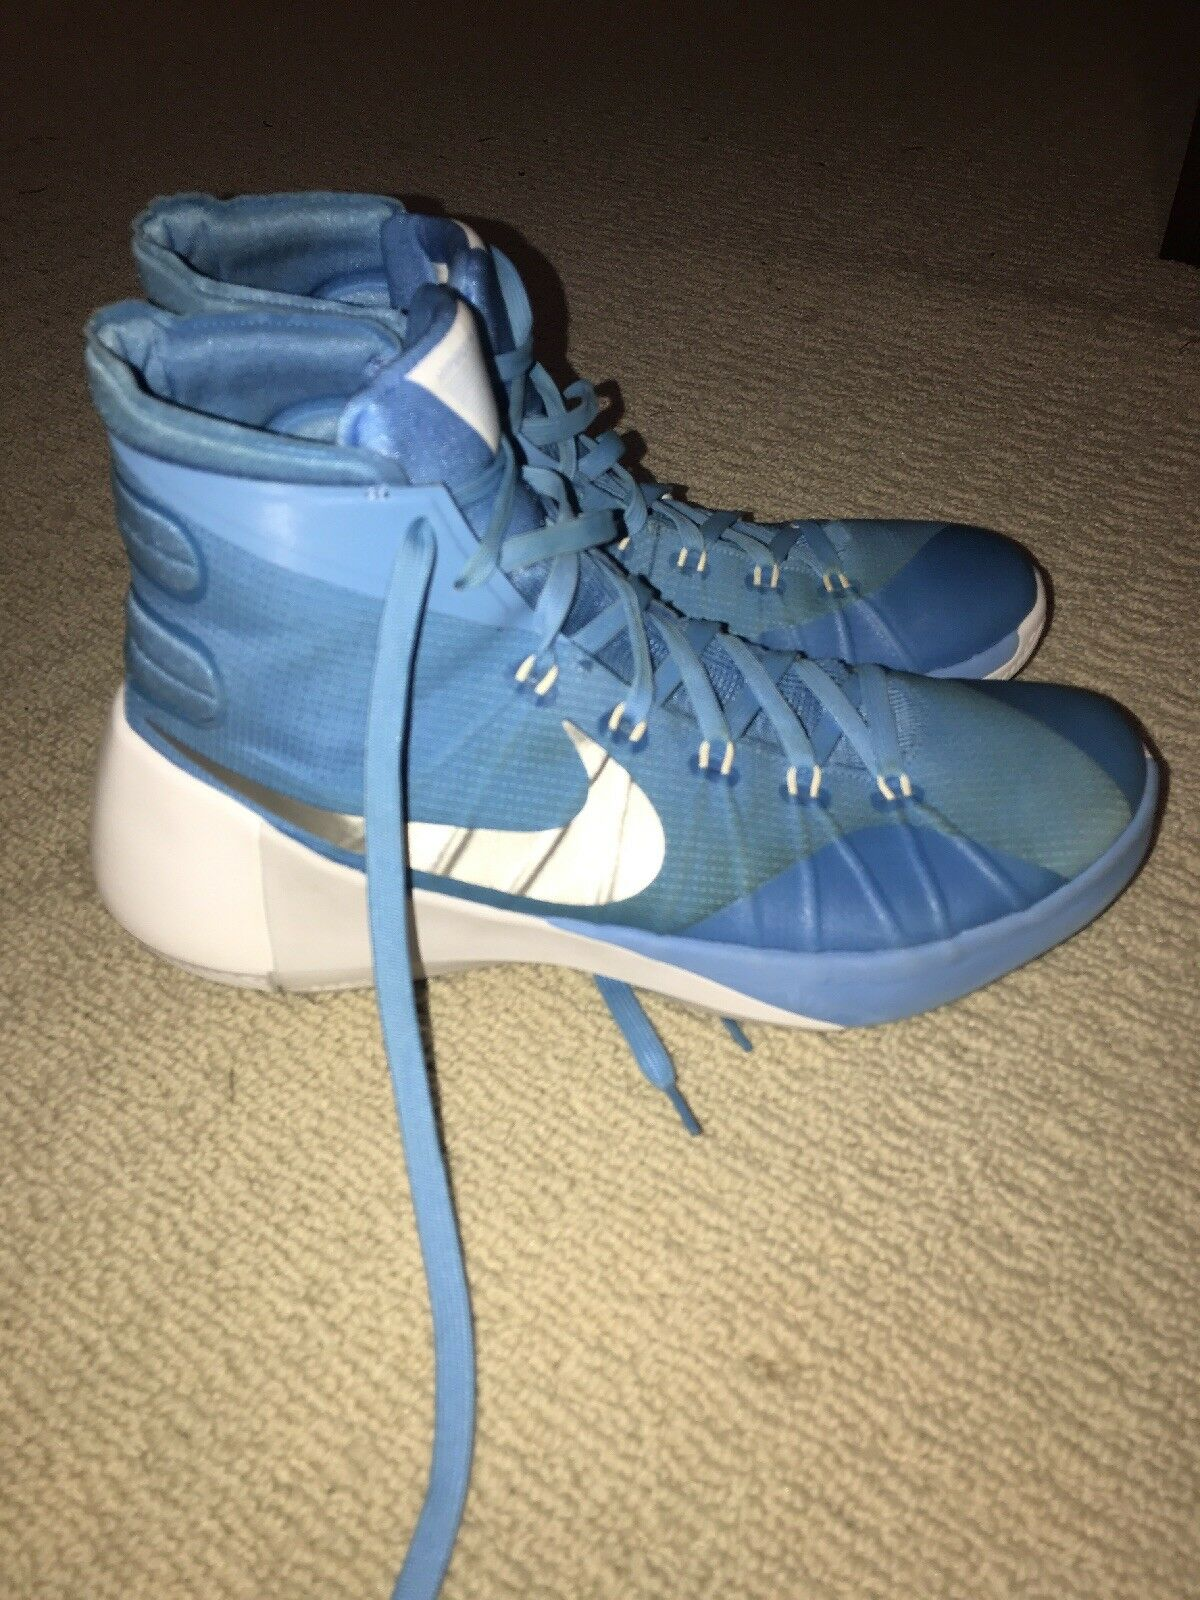 nike mens basketball shoes Price reduction size 12